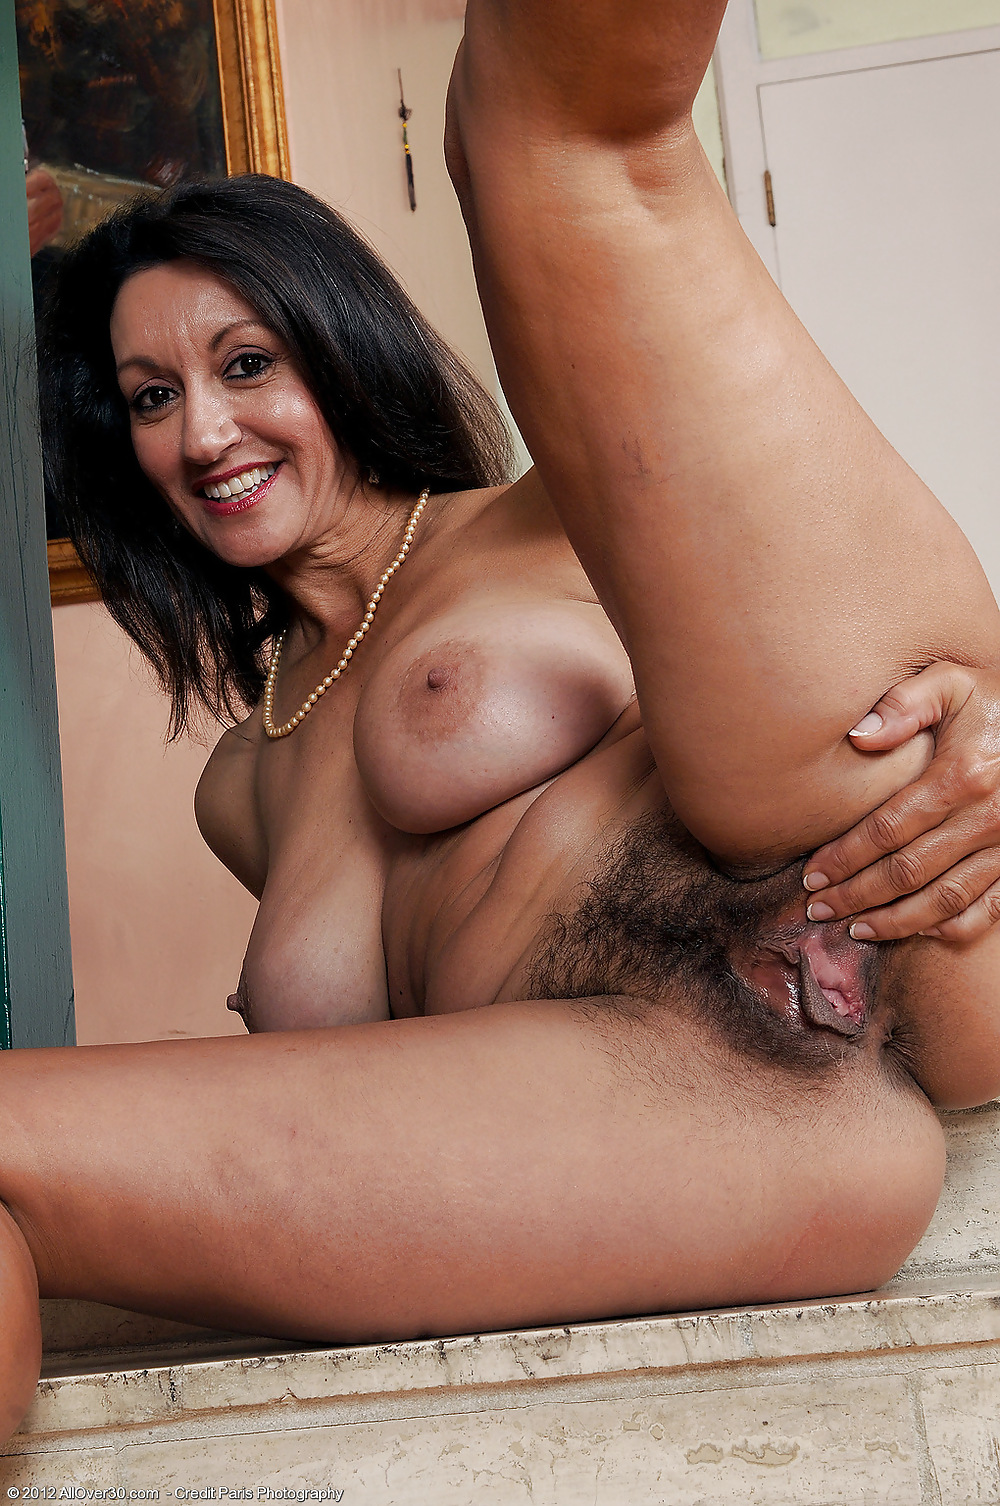 Hd mature porn pictures-6706